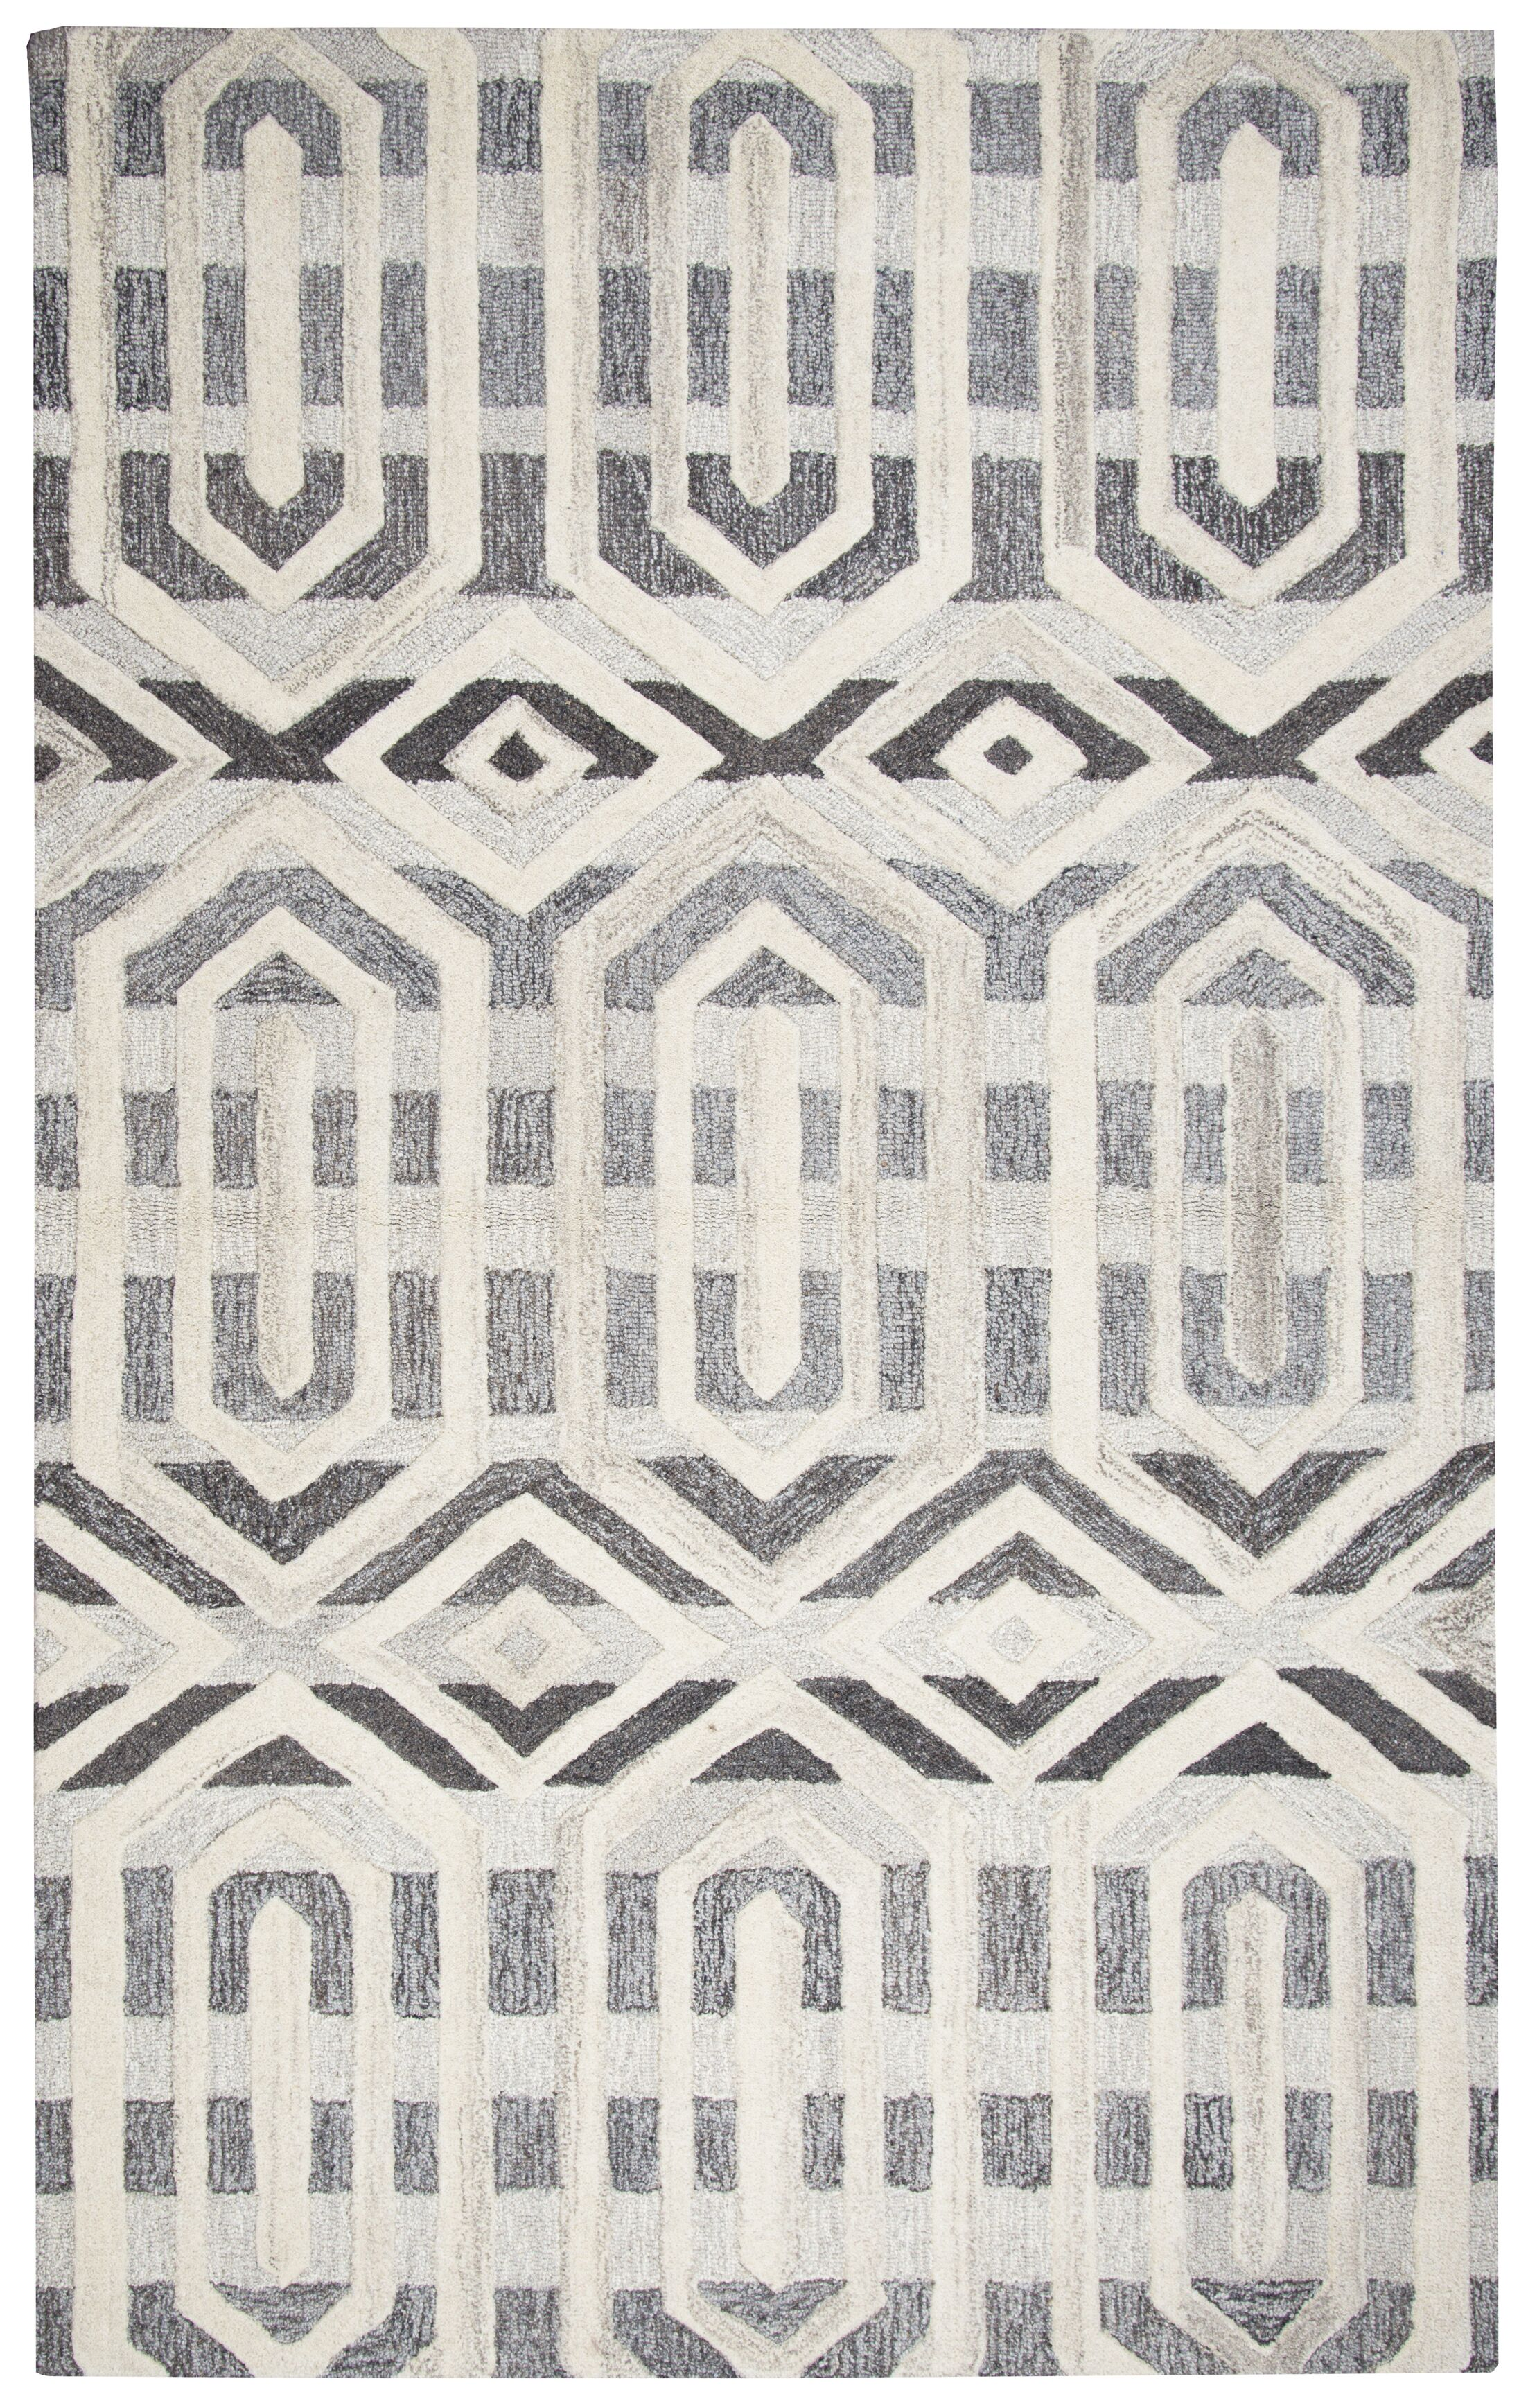 Yucca Place Hand-Tufted Gray Area Rug Rug Size: Rectangle 9' x 12'